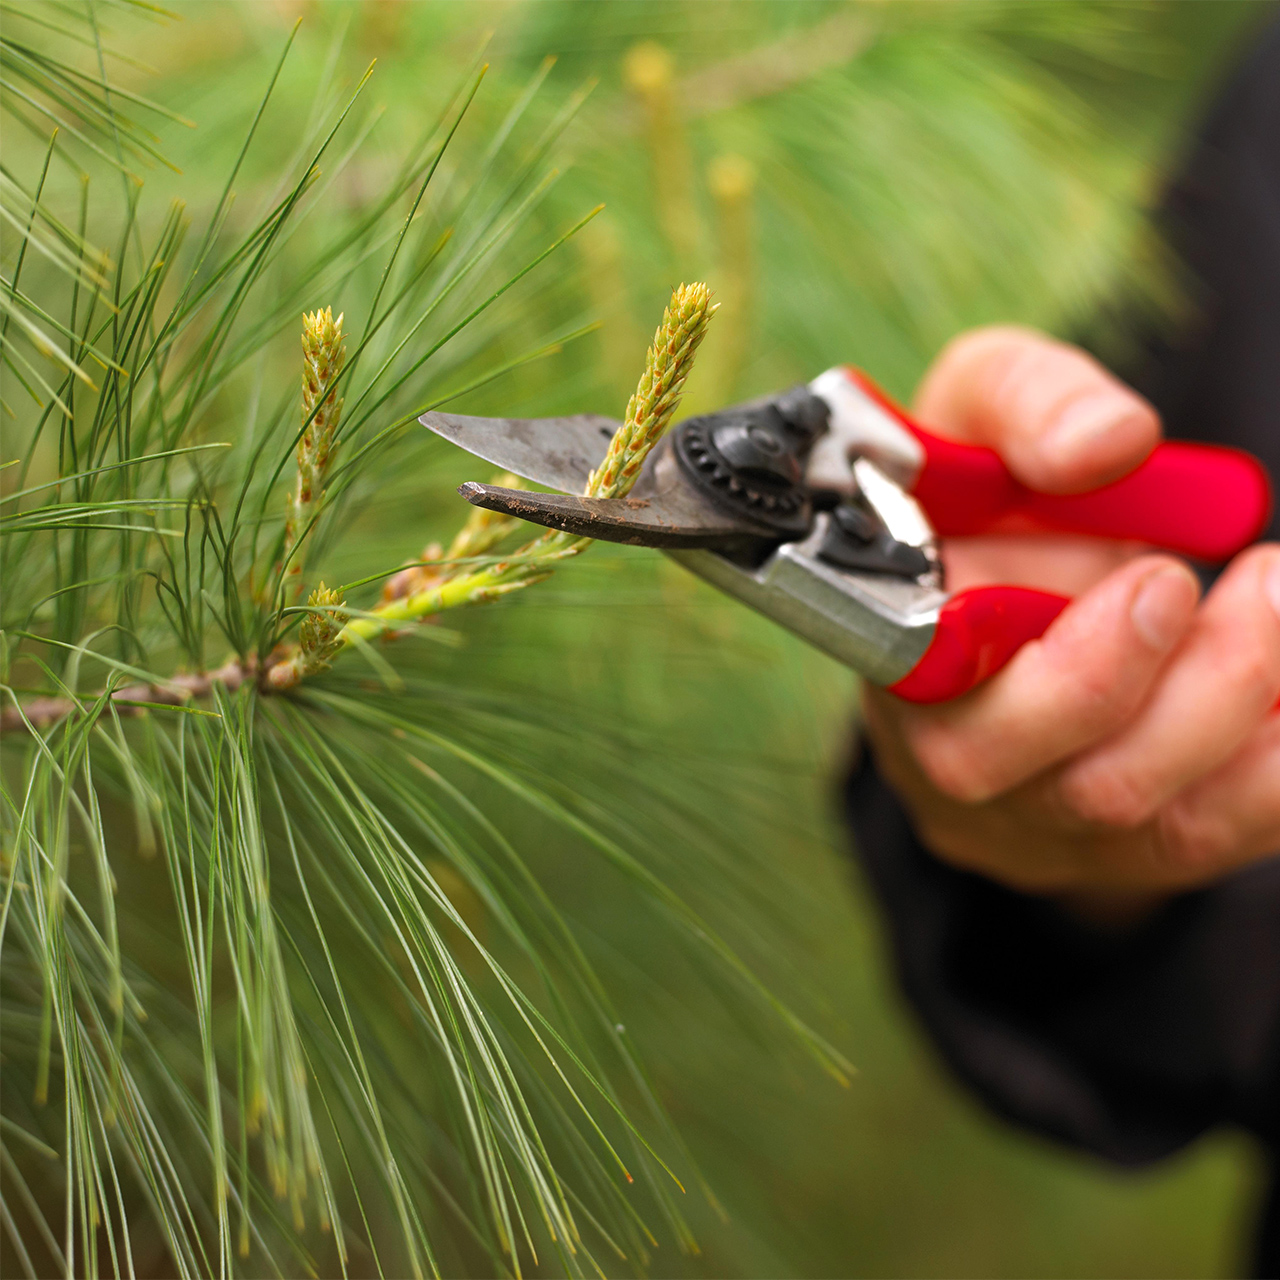 pruning pine tree with red shears